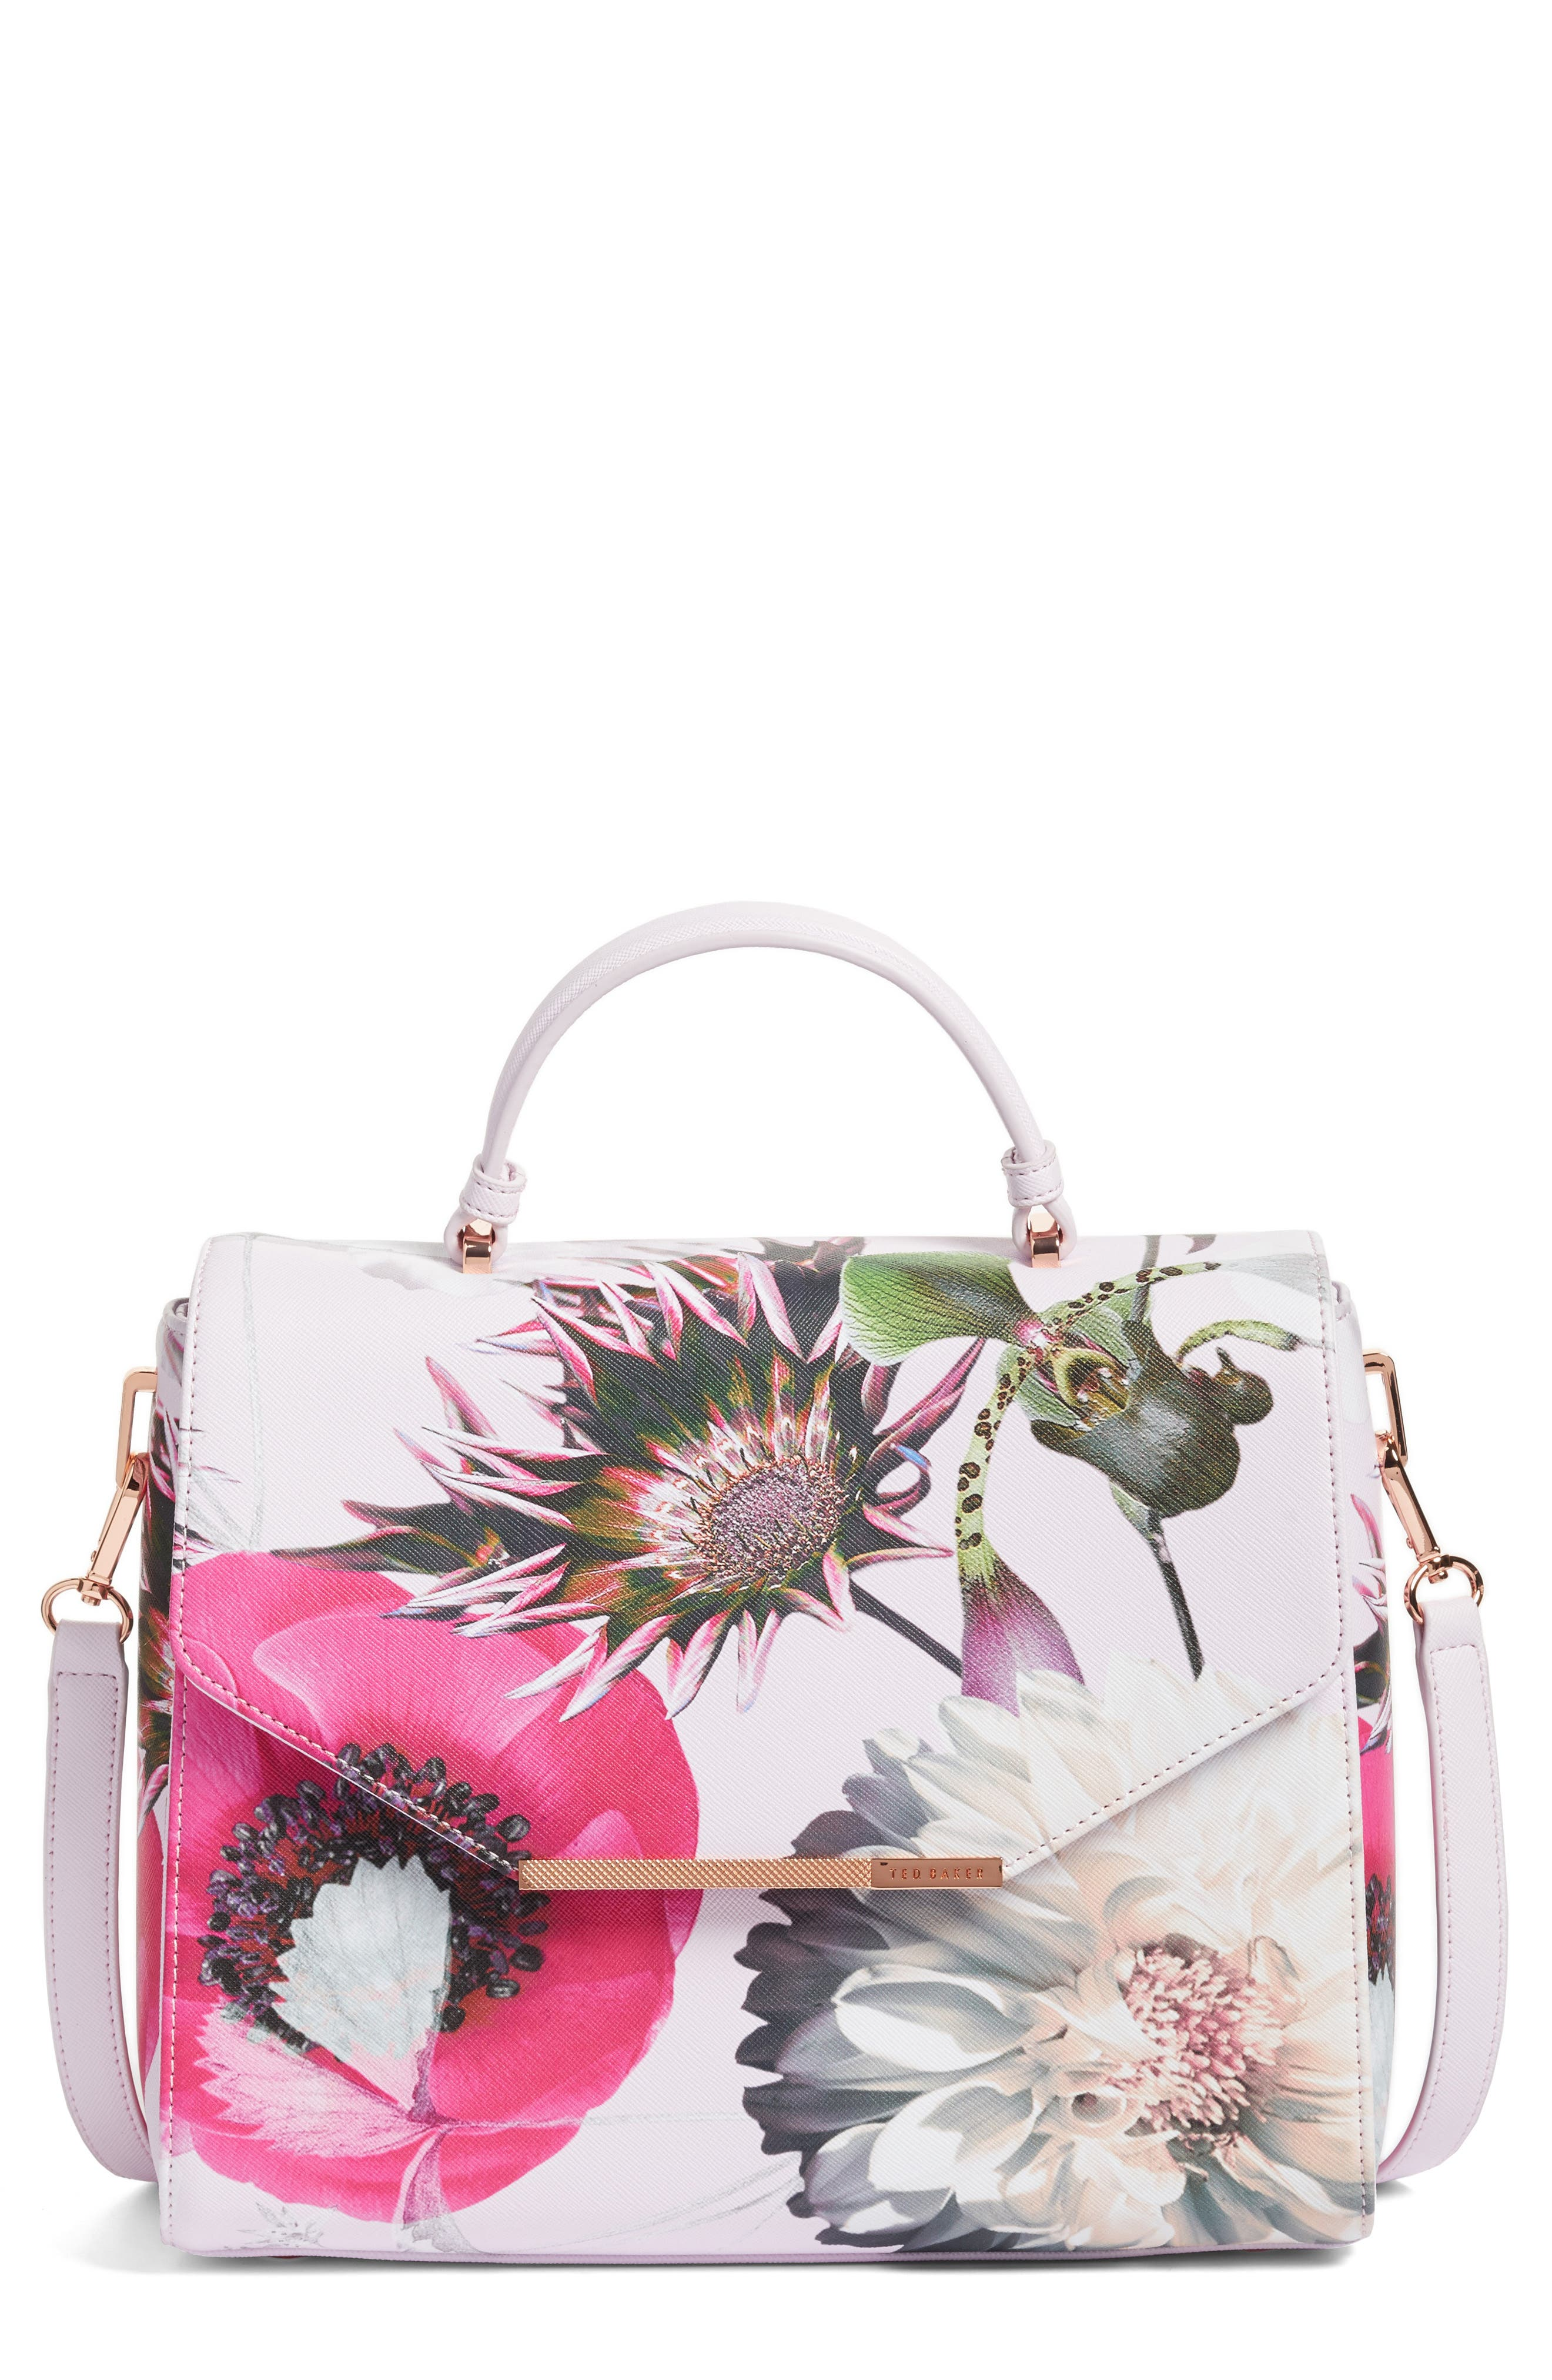 TED BAKER LONDON Large Paulet Neon Tote